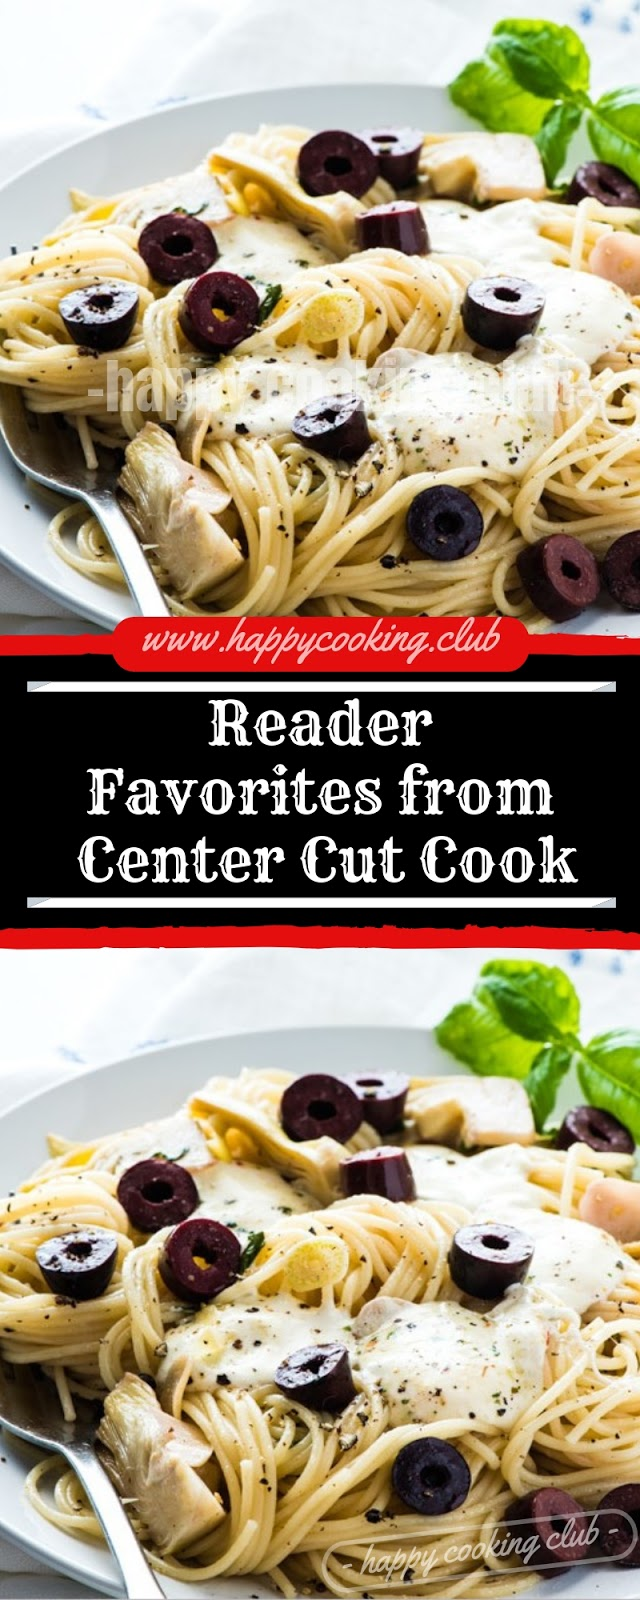 Reader Favorites from Center Cut Cook